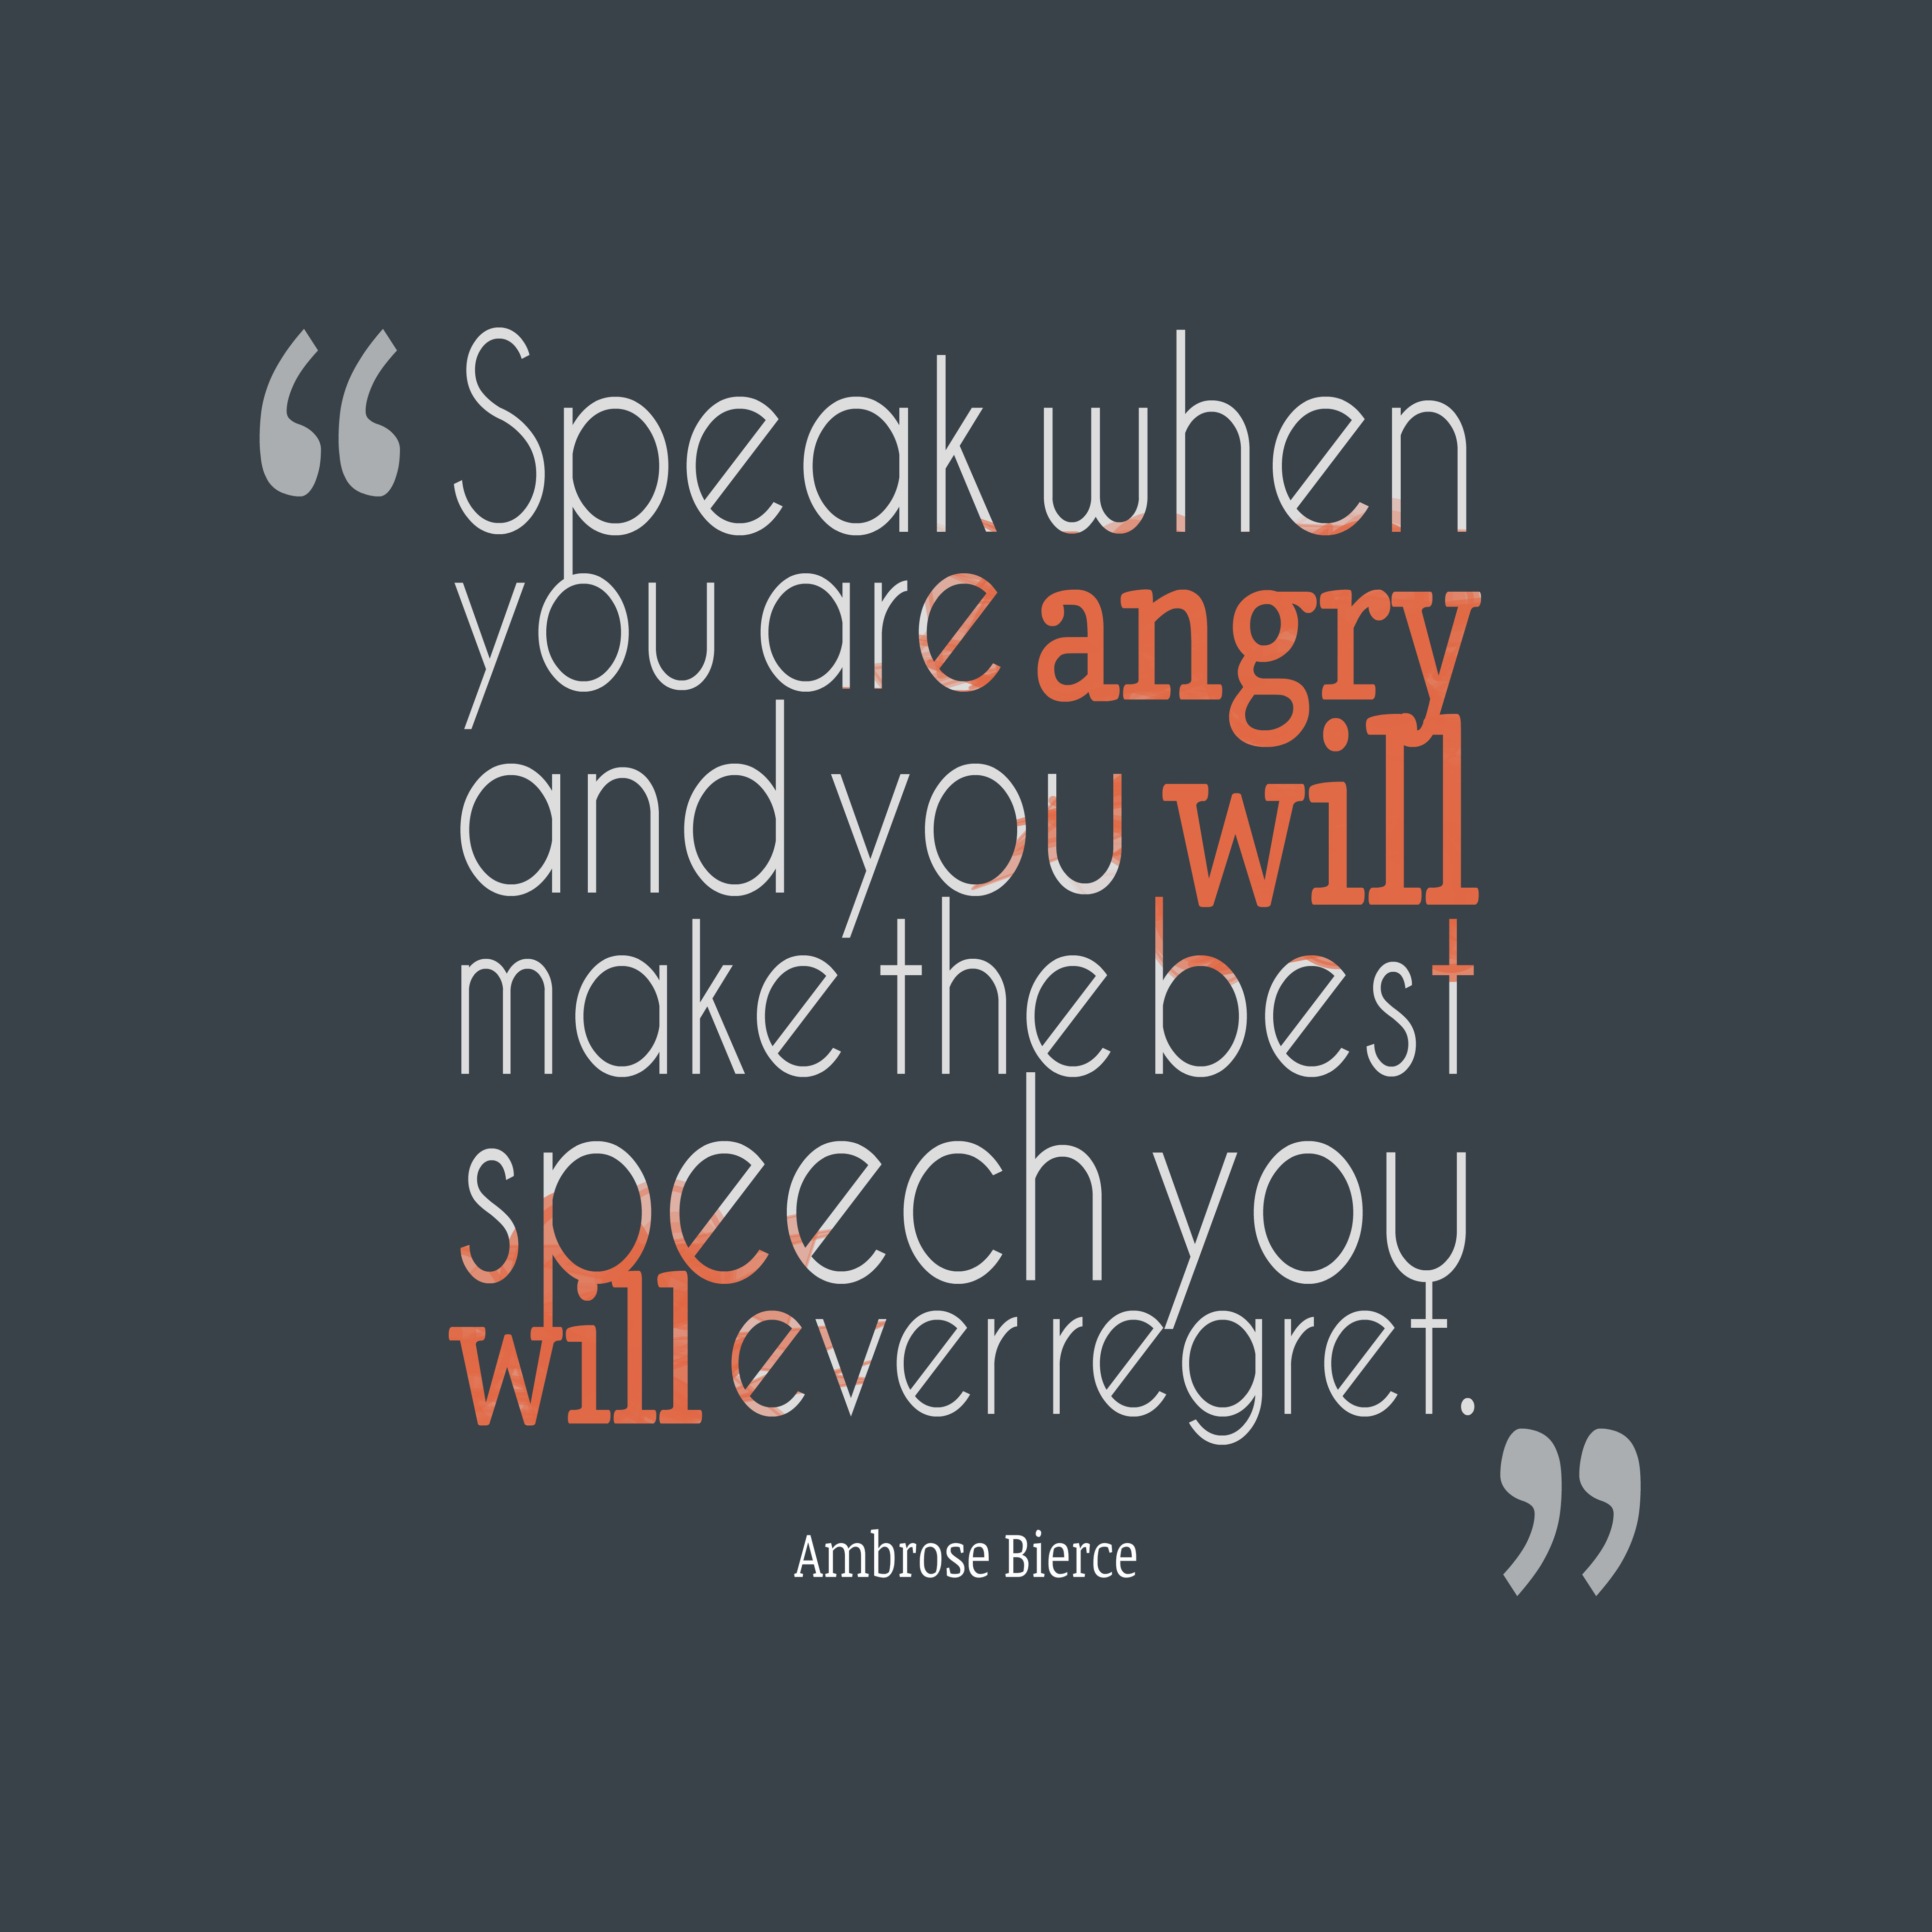 Angery Words Quotes Pictures: 60 Famous Anger Quotes Of All Time